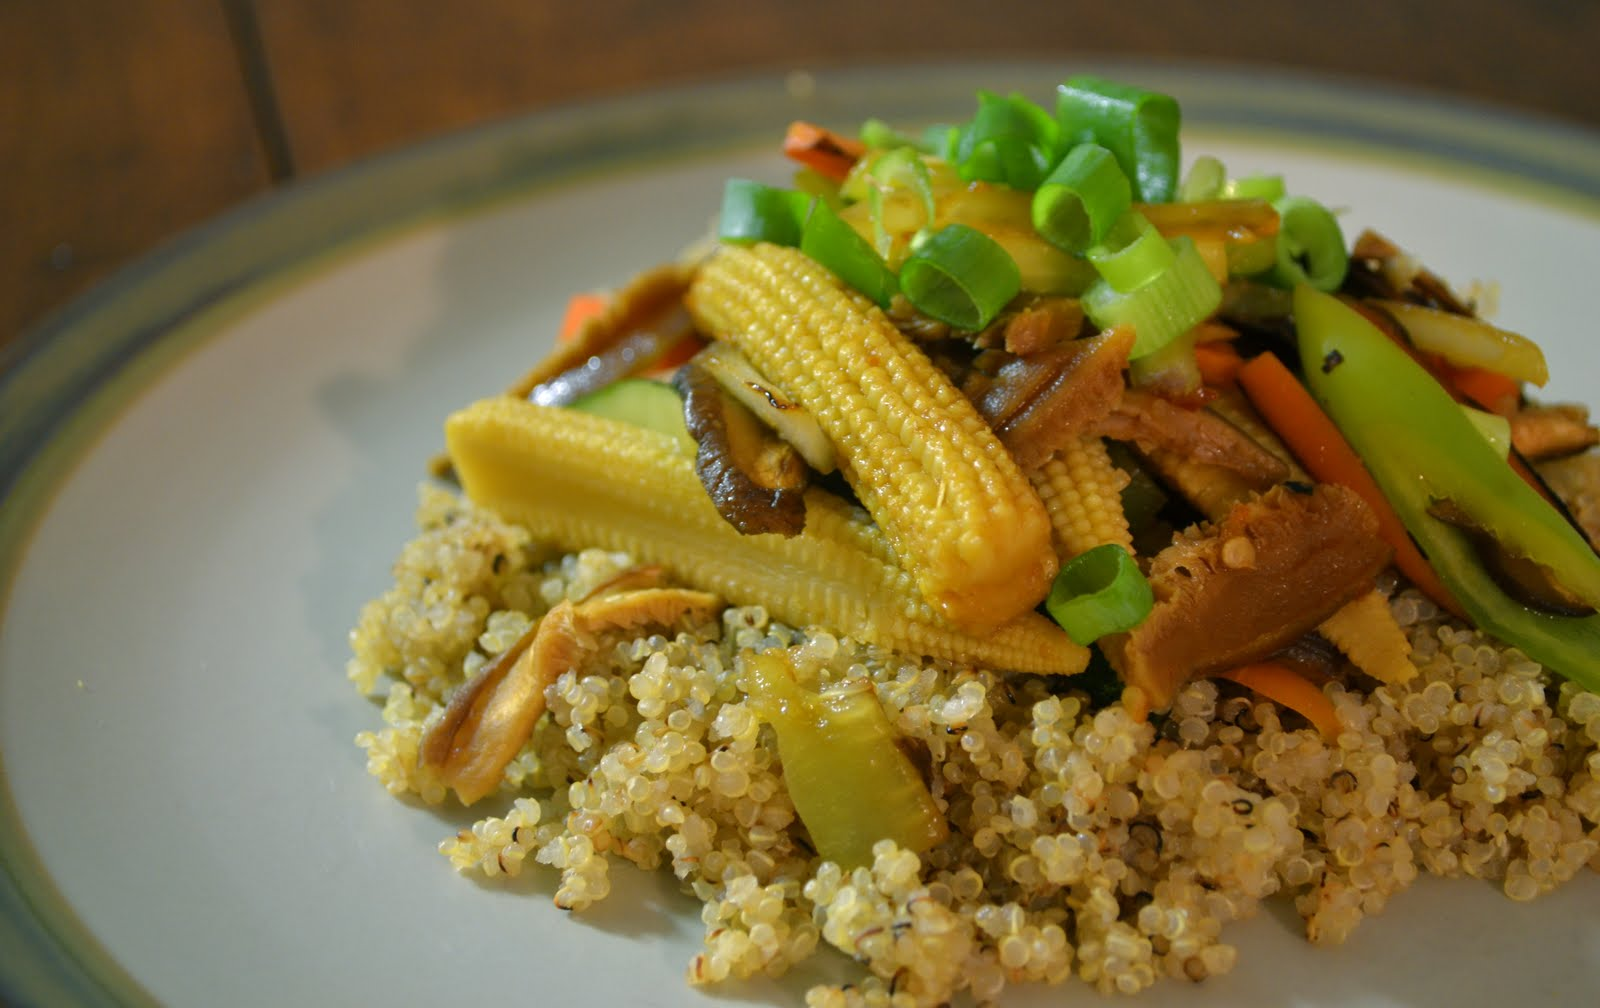 Veggies For Real: Summer Stir-Fry with Quinoa